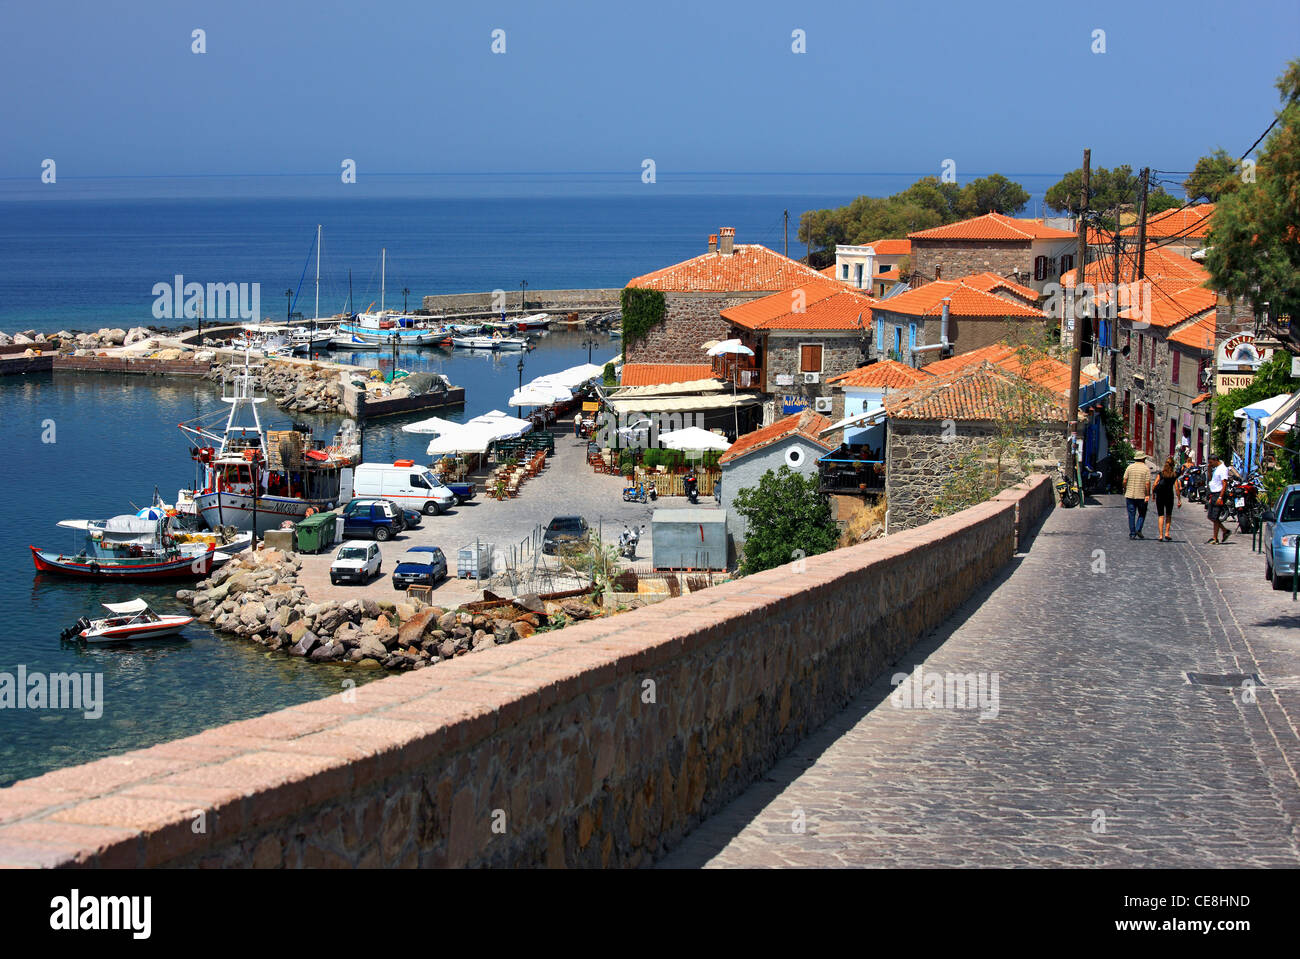 The road that leads to the picturesque little harbor of Molyvos town, Lesvos island, Northern Aegean, Greece. - Stock Image